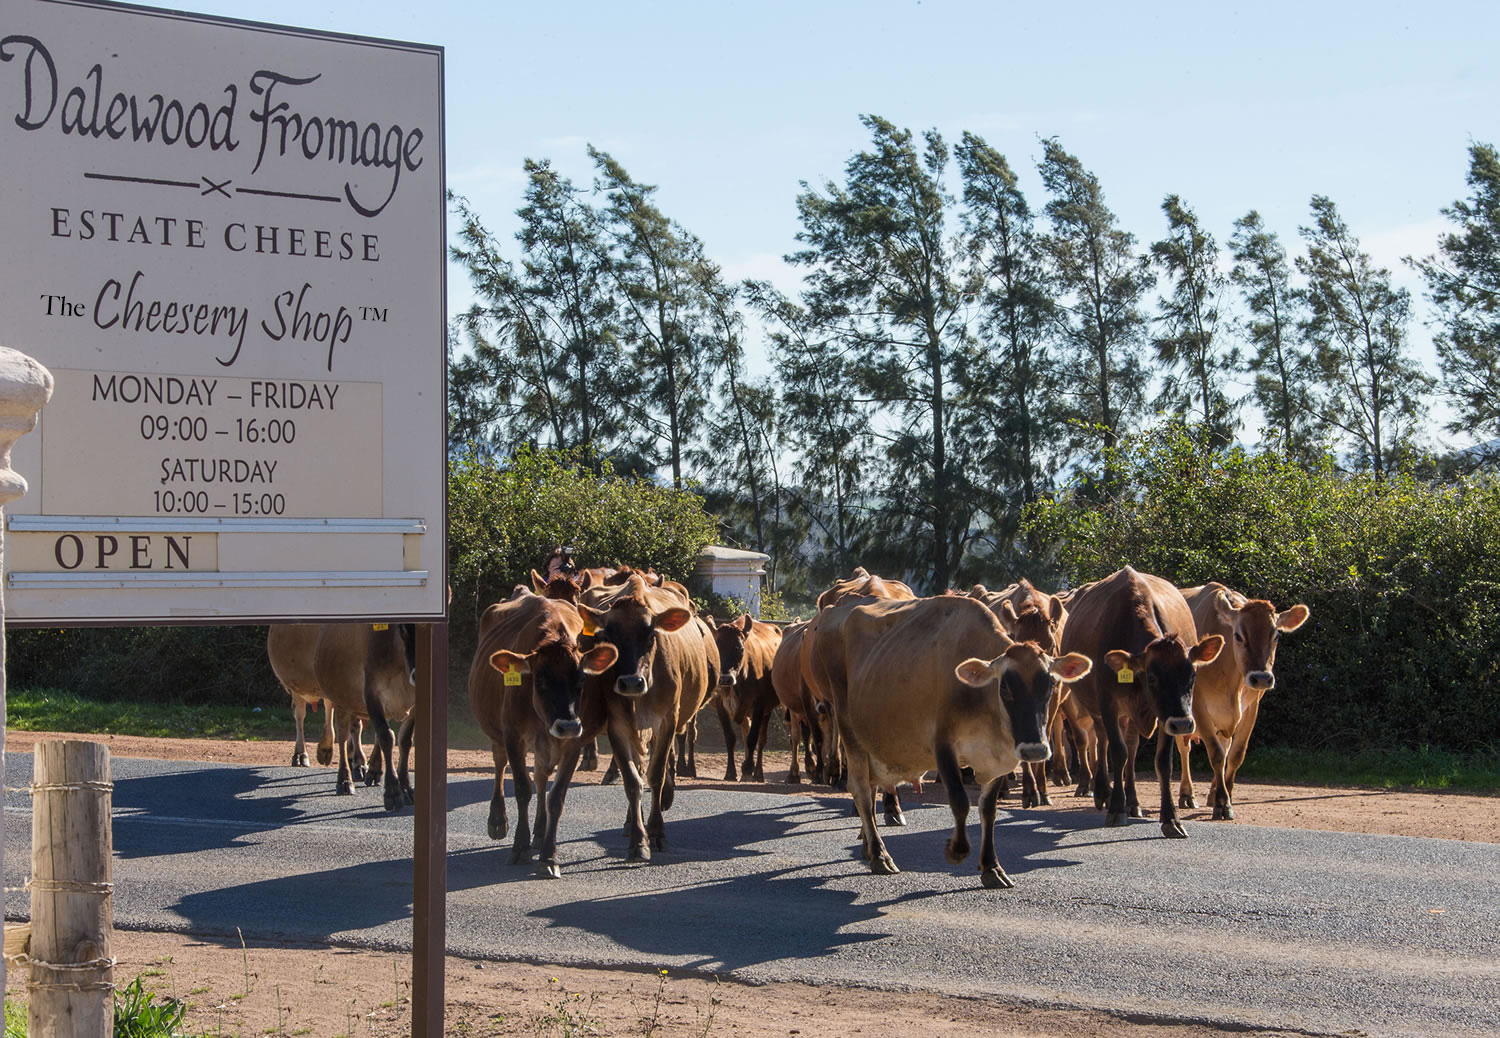 The Cheesery Shop